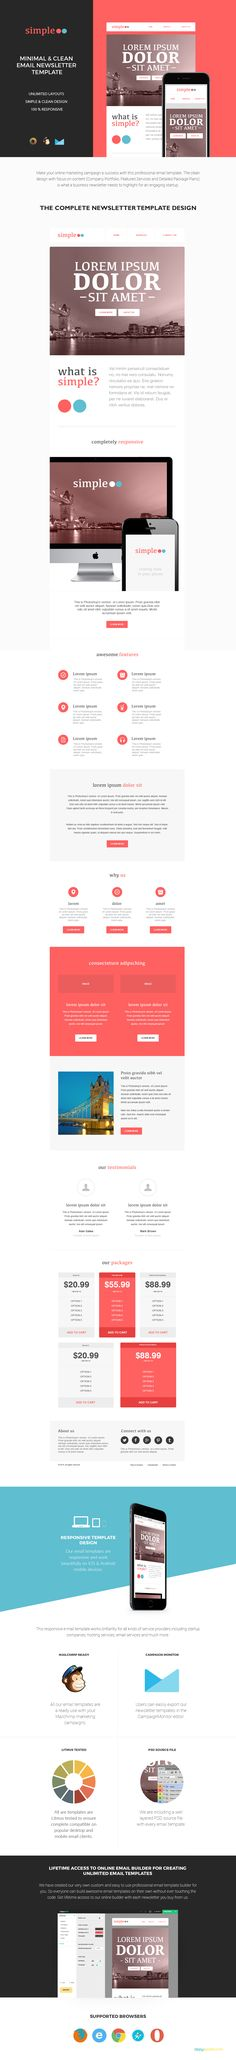 Free Email Templates by ActiveCampaign Email Template - ms word cover page templates free download